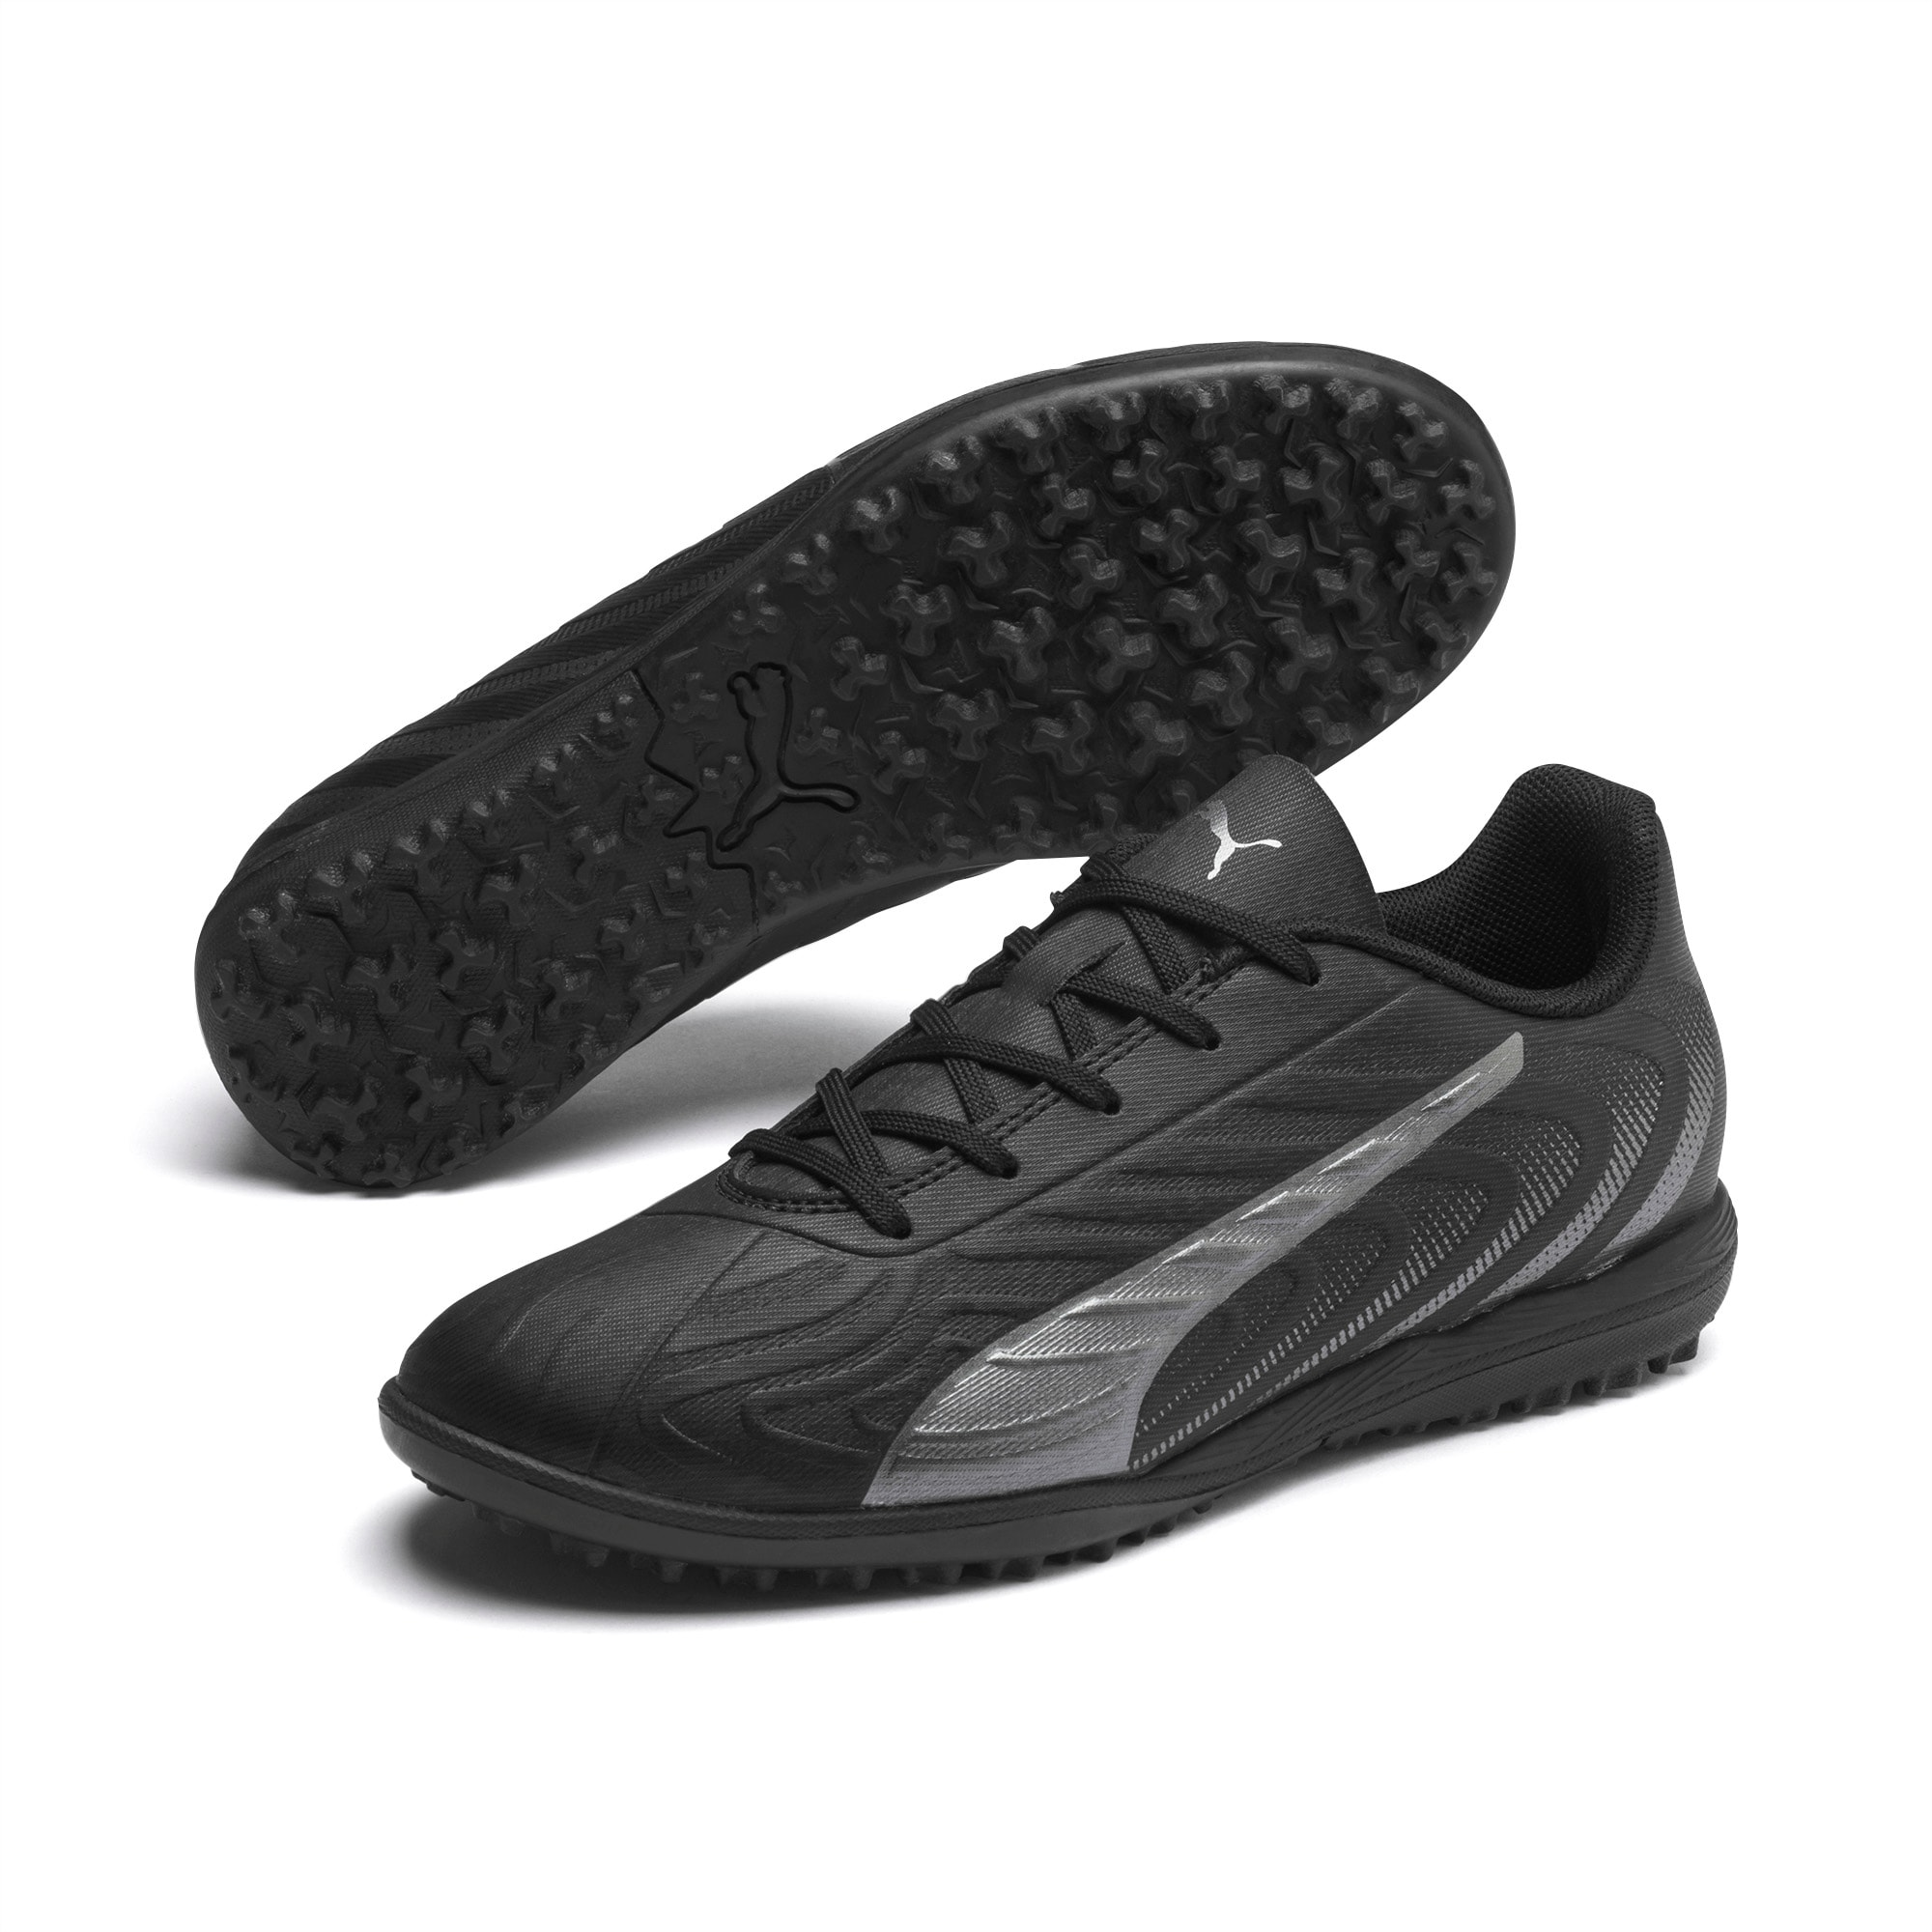 PUMA ONE 20.4 TT Soccer Shoes JR